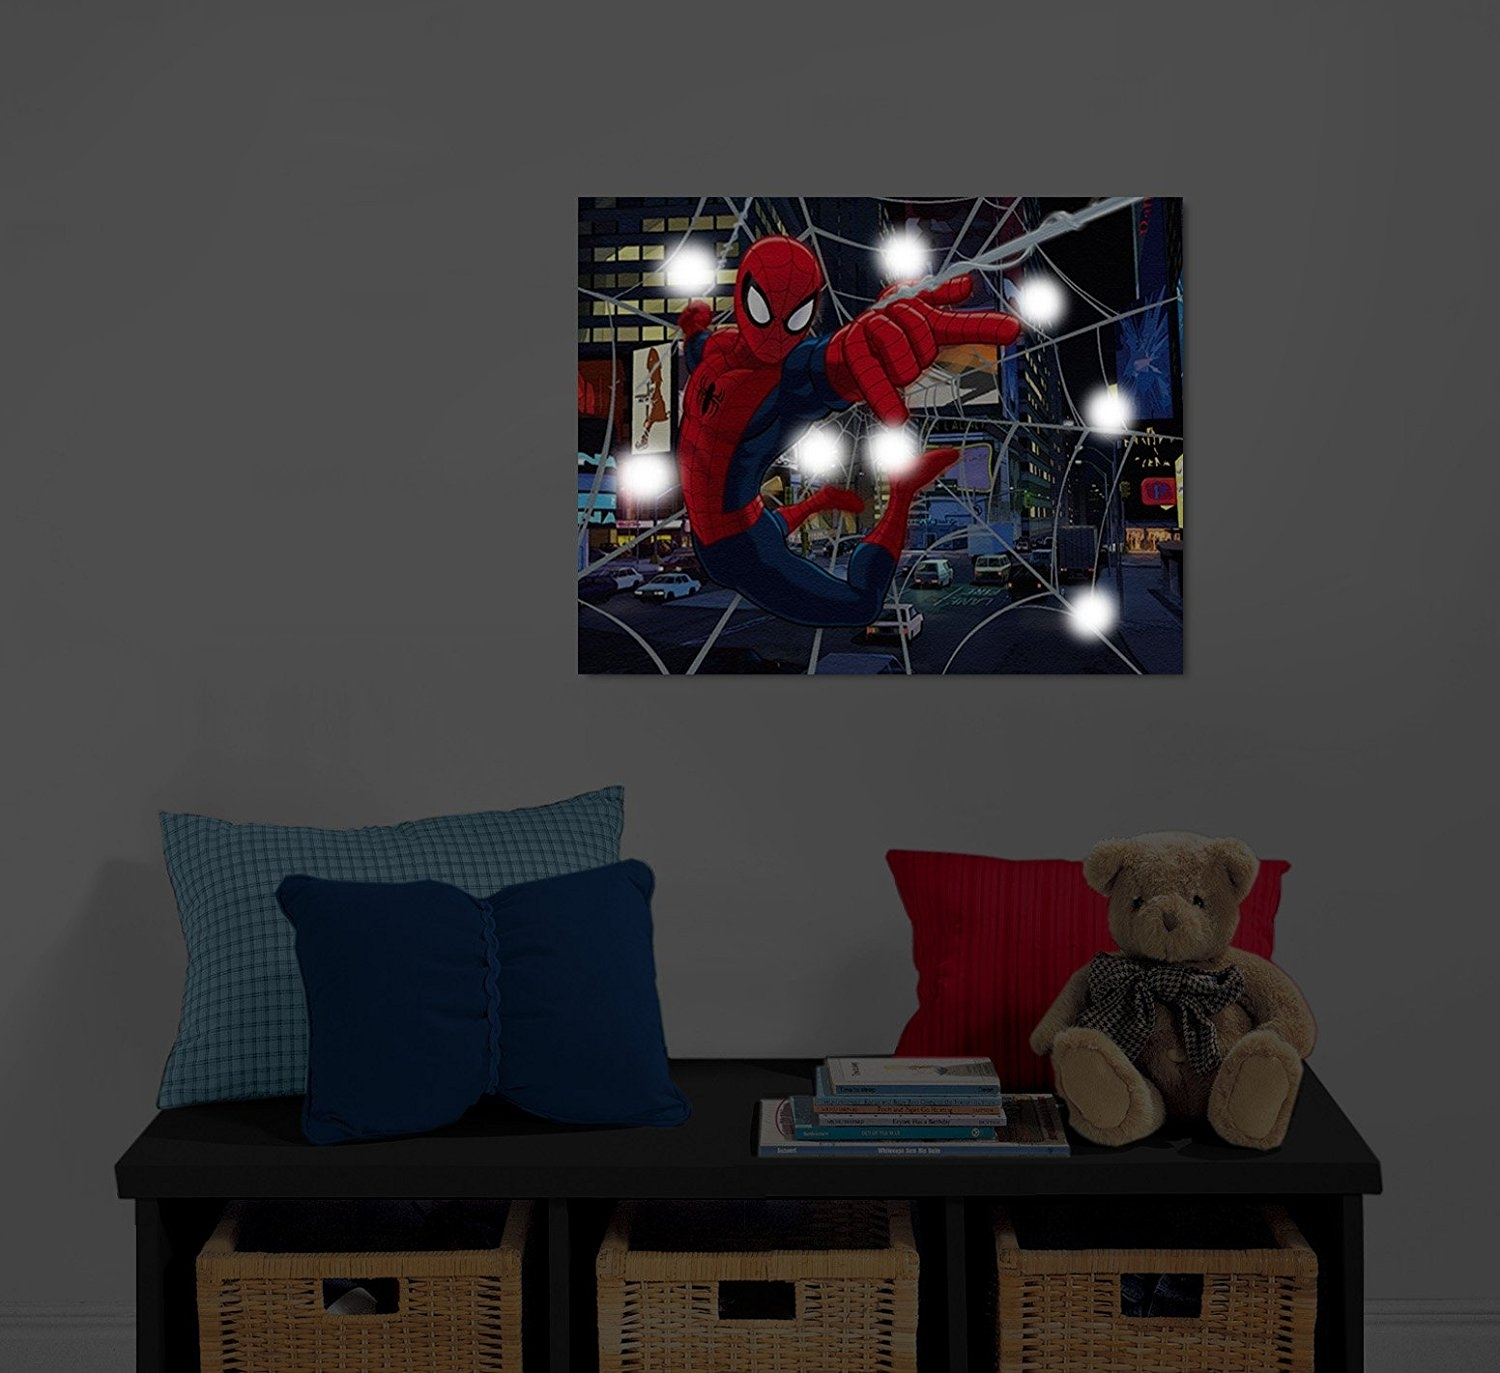 Marvel Spiderman Light Up Canvas Wall Art With Bonus Led Lights Pertaining To Current Marvel Canvas Wall Art (View 15 of 15)